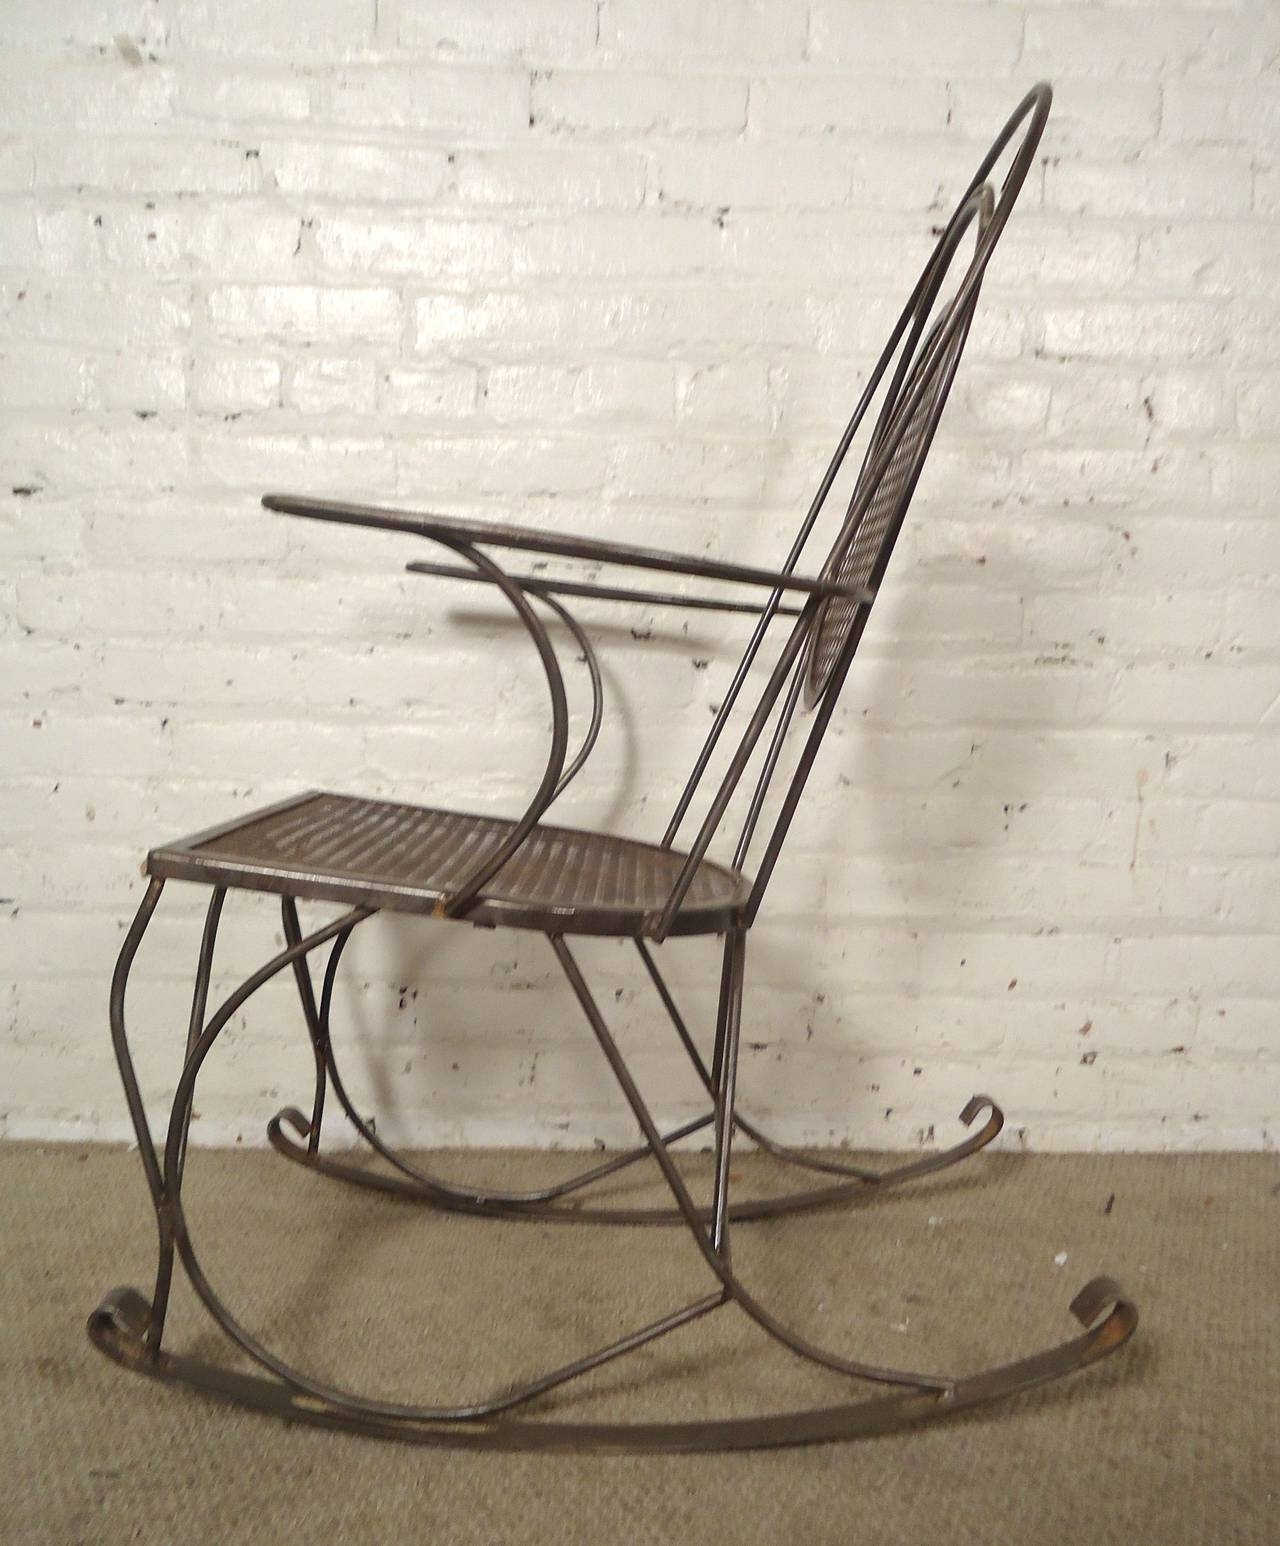 Vintage Outdoor Metal Rocking Chairs Designs Chair Patio Table And With Popular Retro Outdoor Rocking Chairs (Gallery 14 of 15)